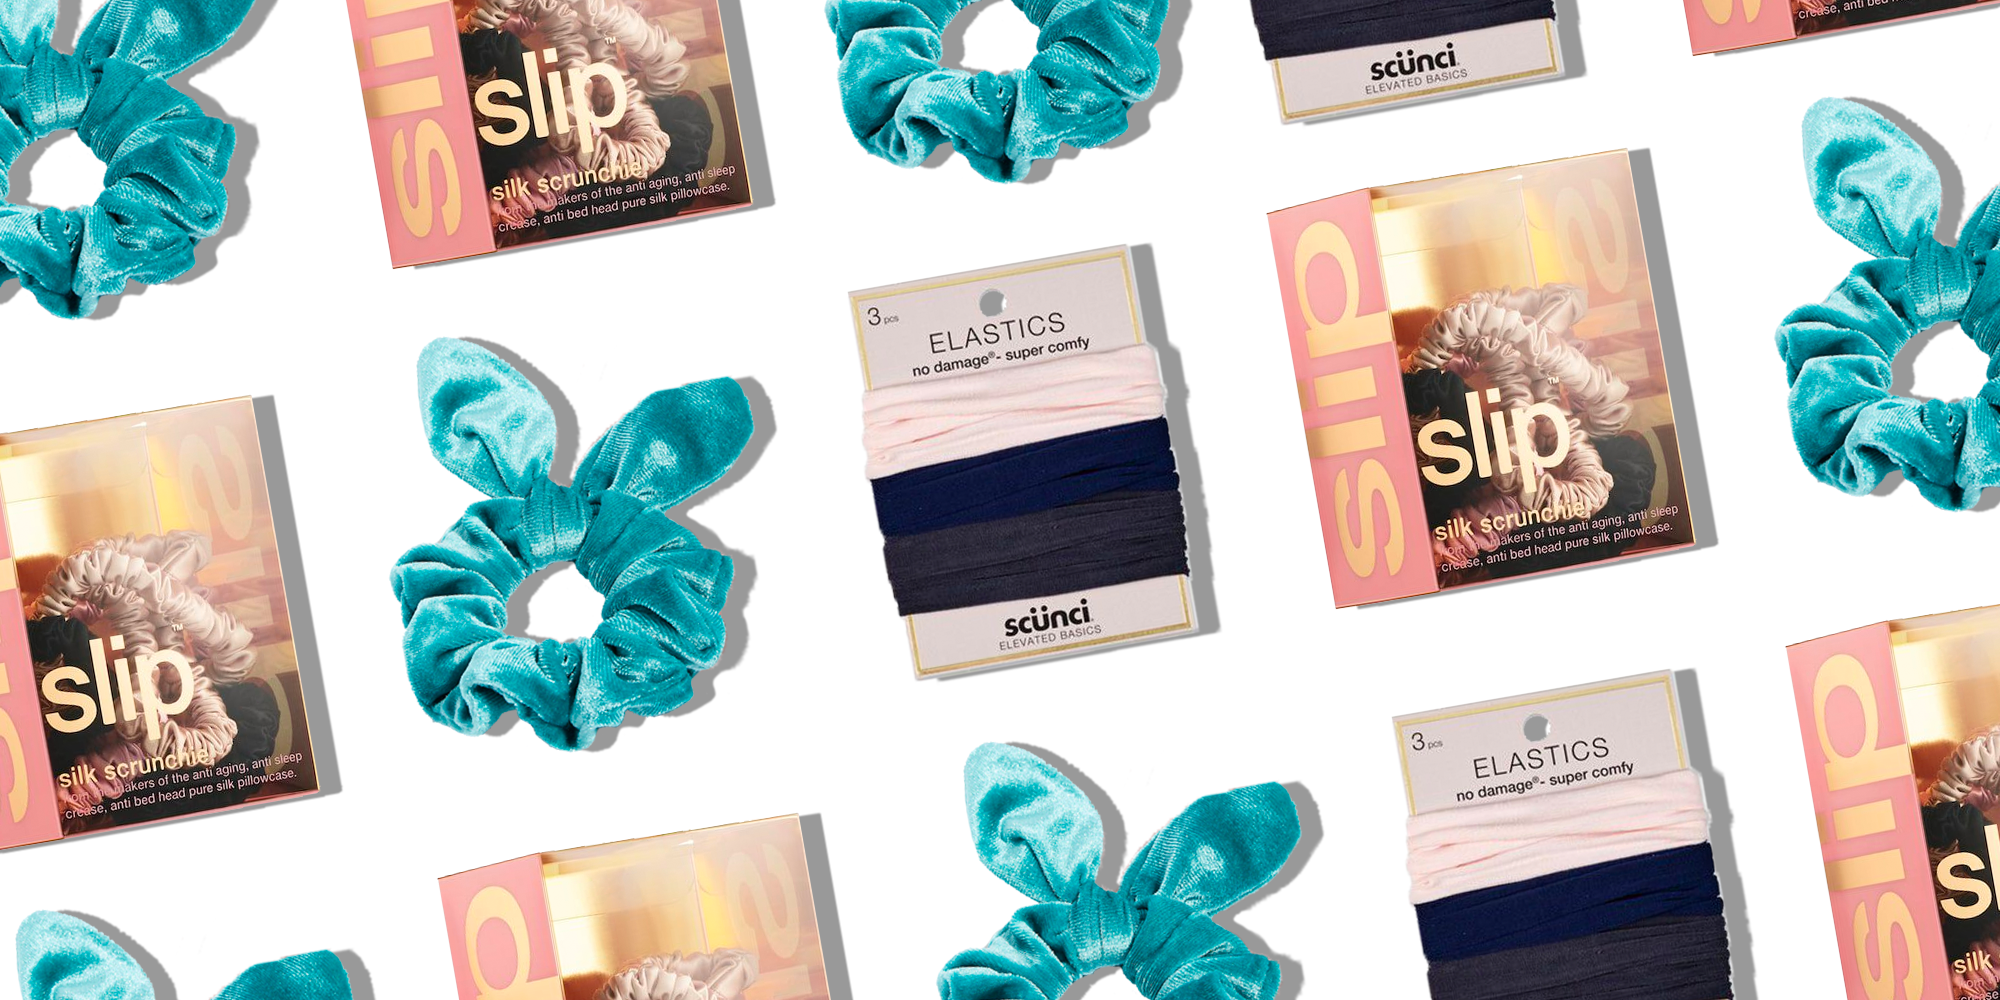 10 no crease hair ties that are gentle and won't damage hair